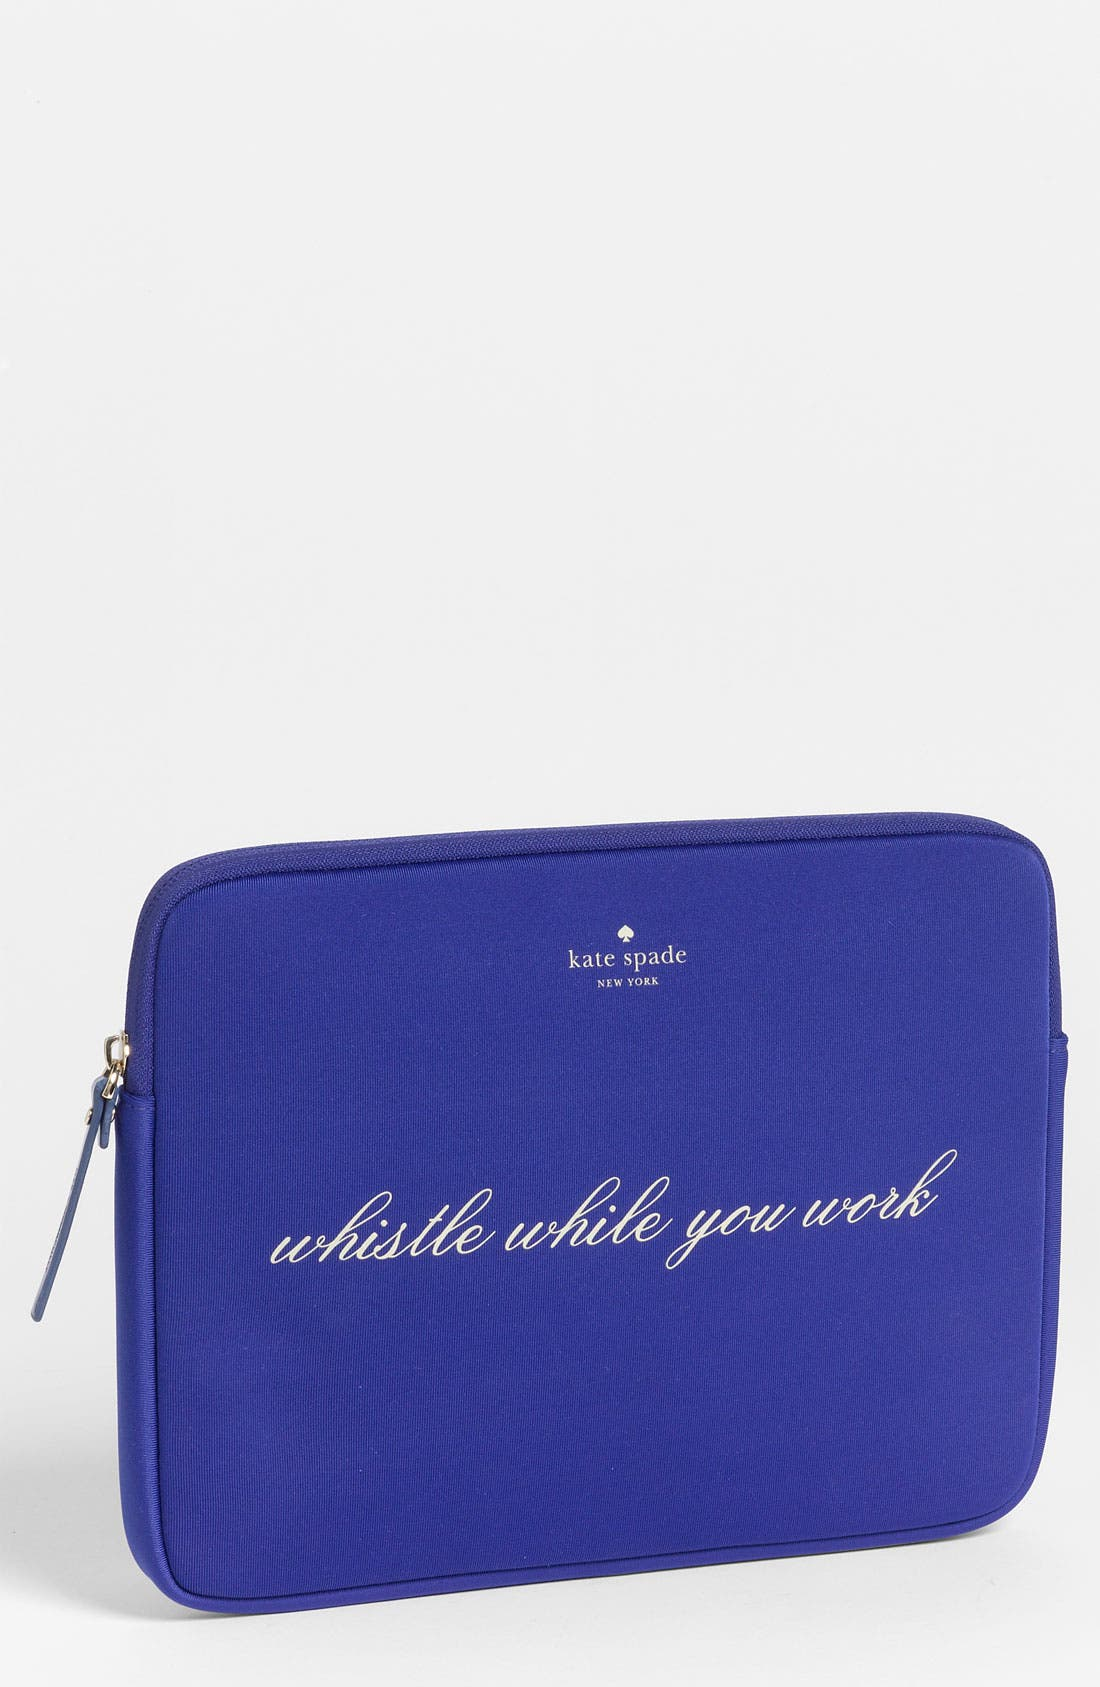 Main Image - kate spade new york 'whistle while you work' iPad sleeve